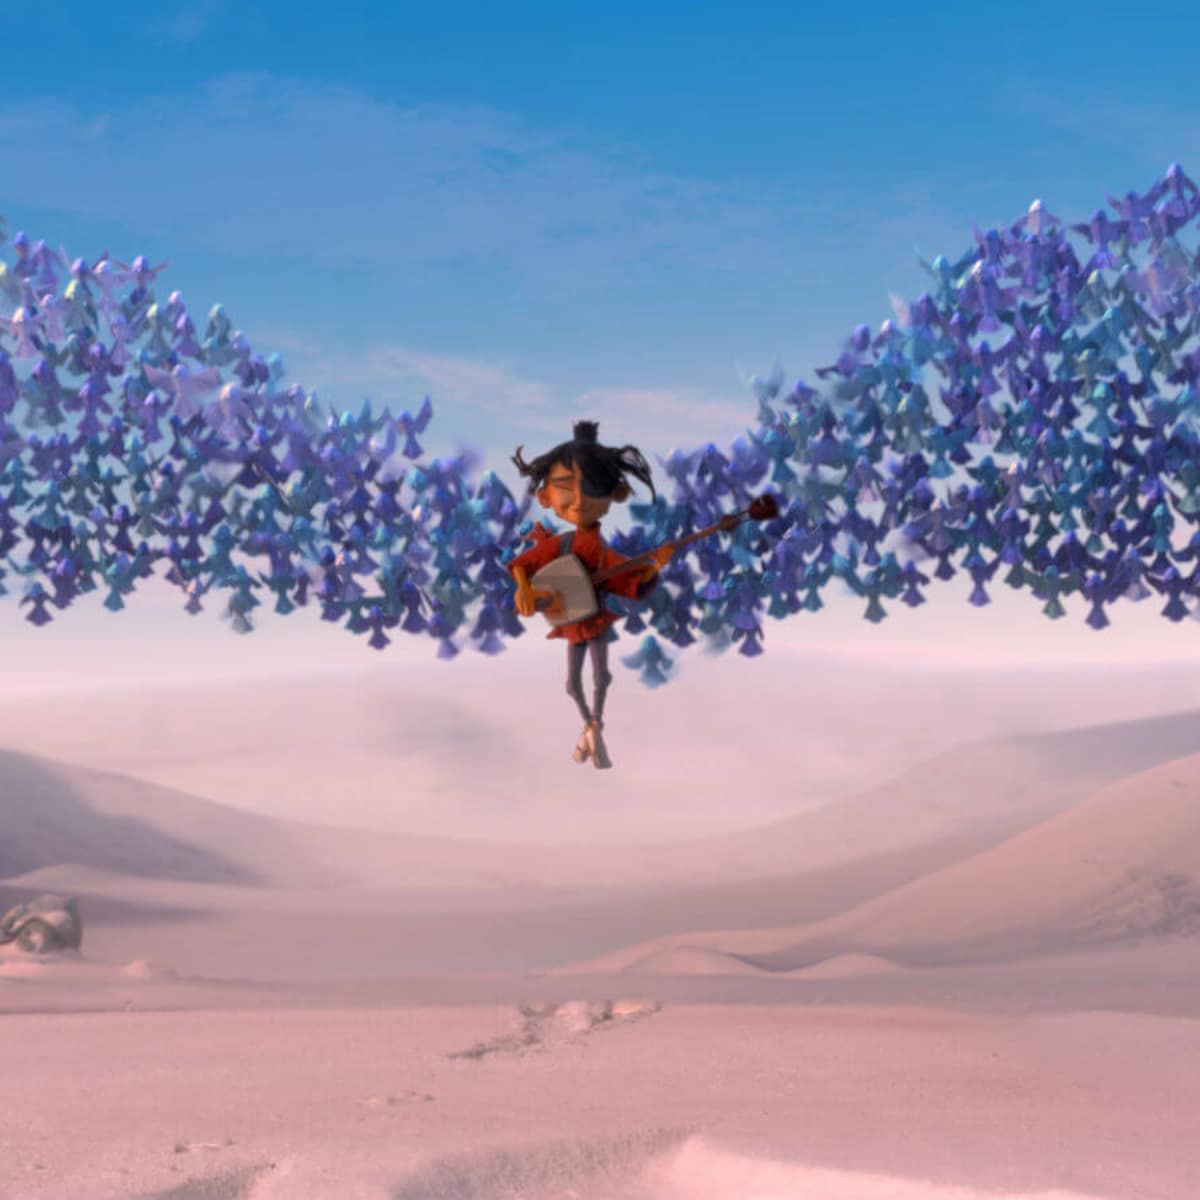 Kubo in Kubo & the Two Strings